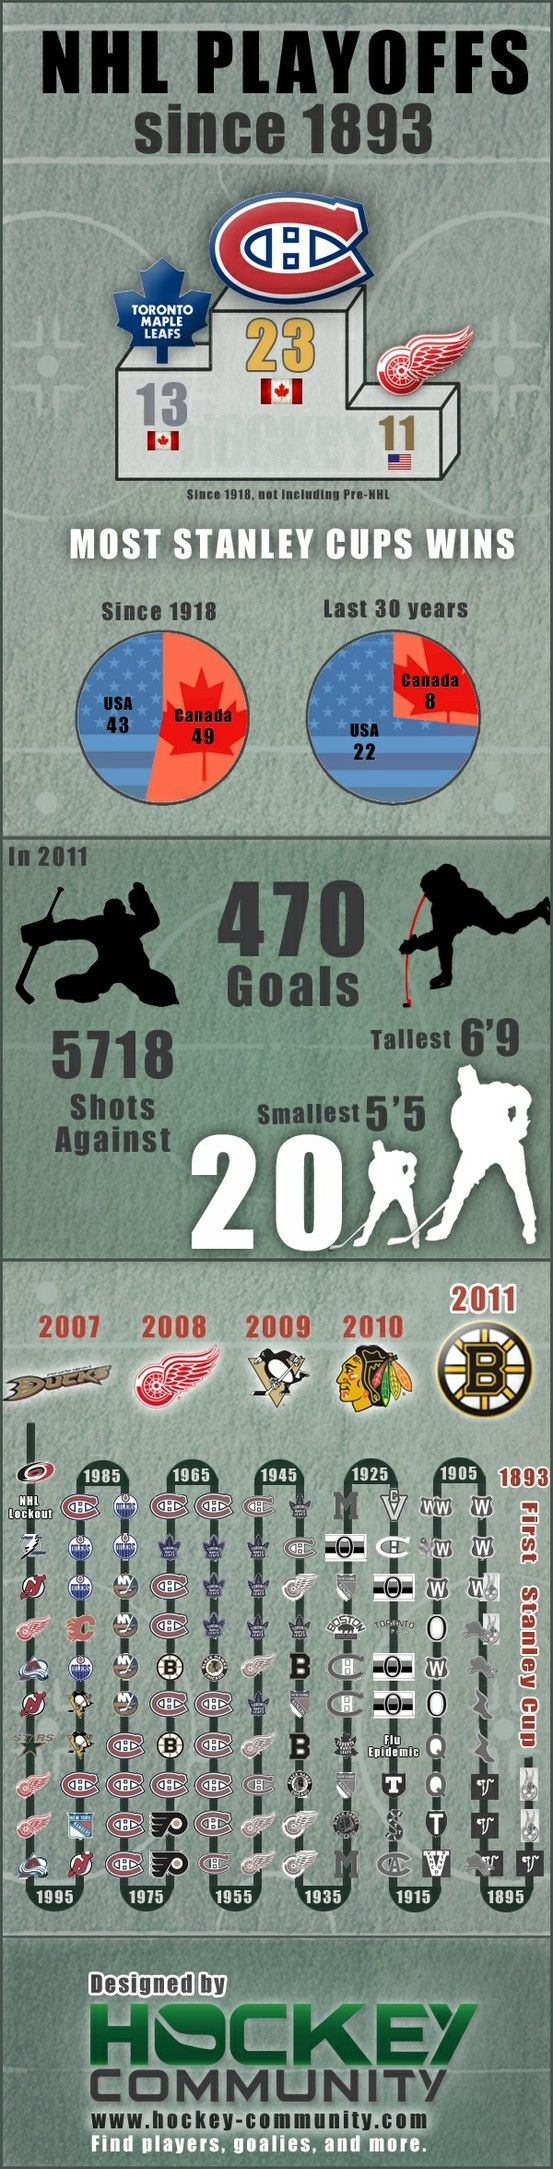 Most Stanley Cups